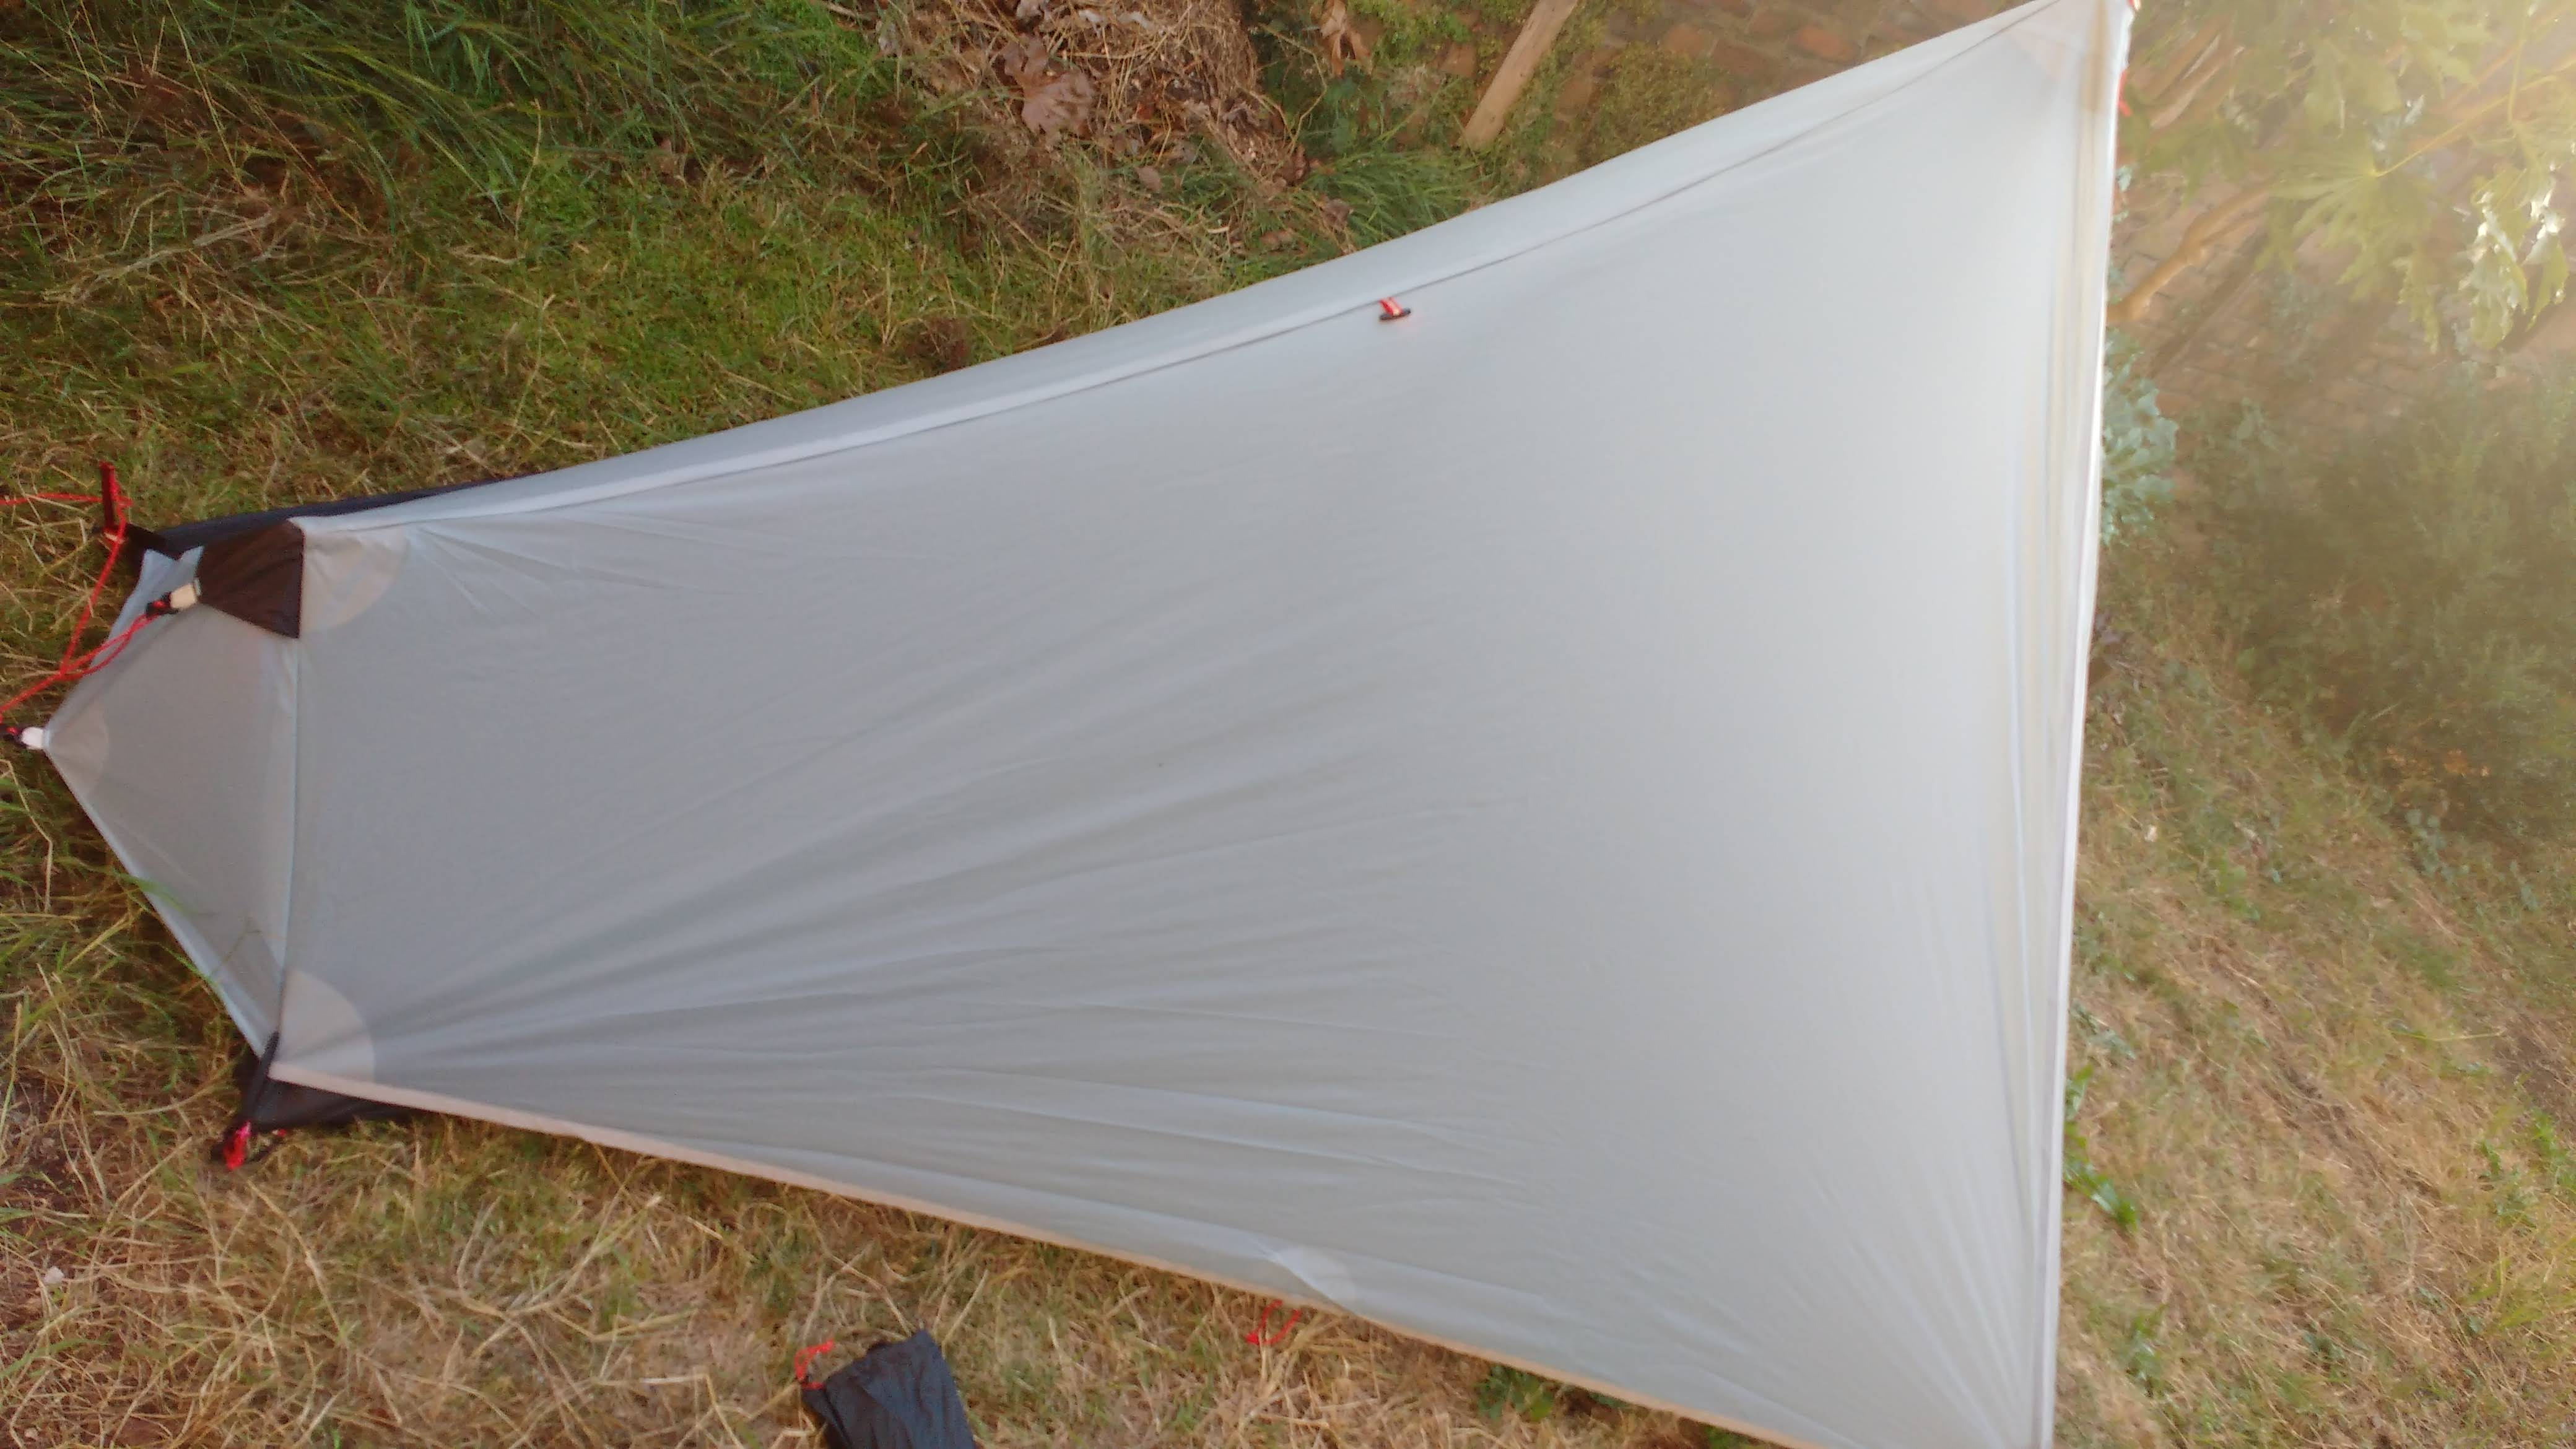 3F UL Gear Solo Tent Pitched